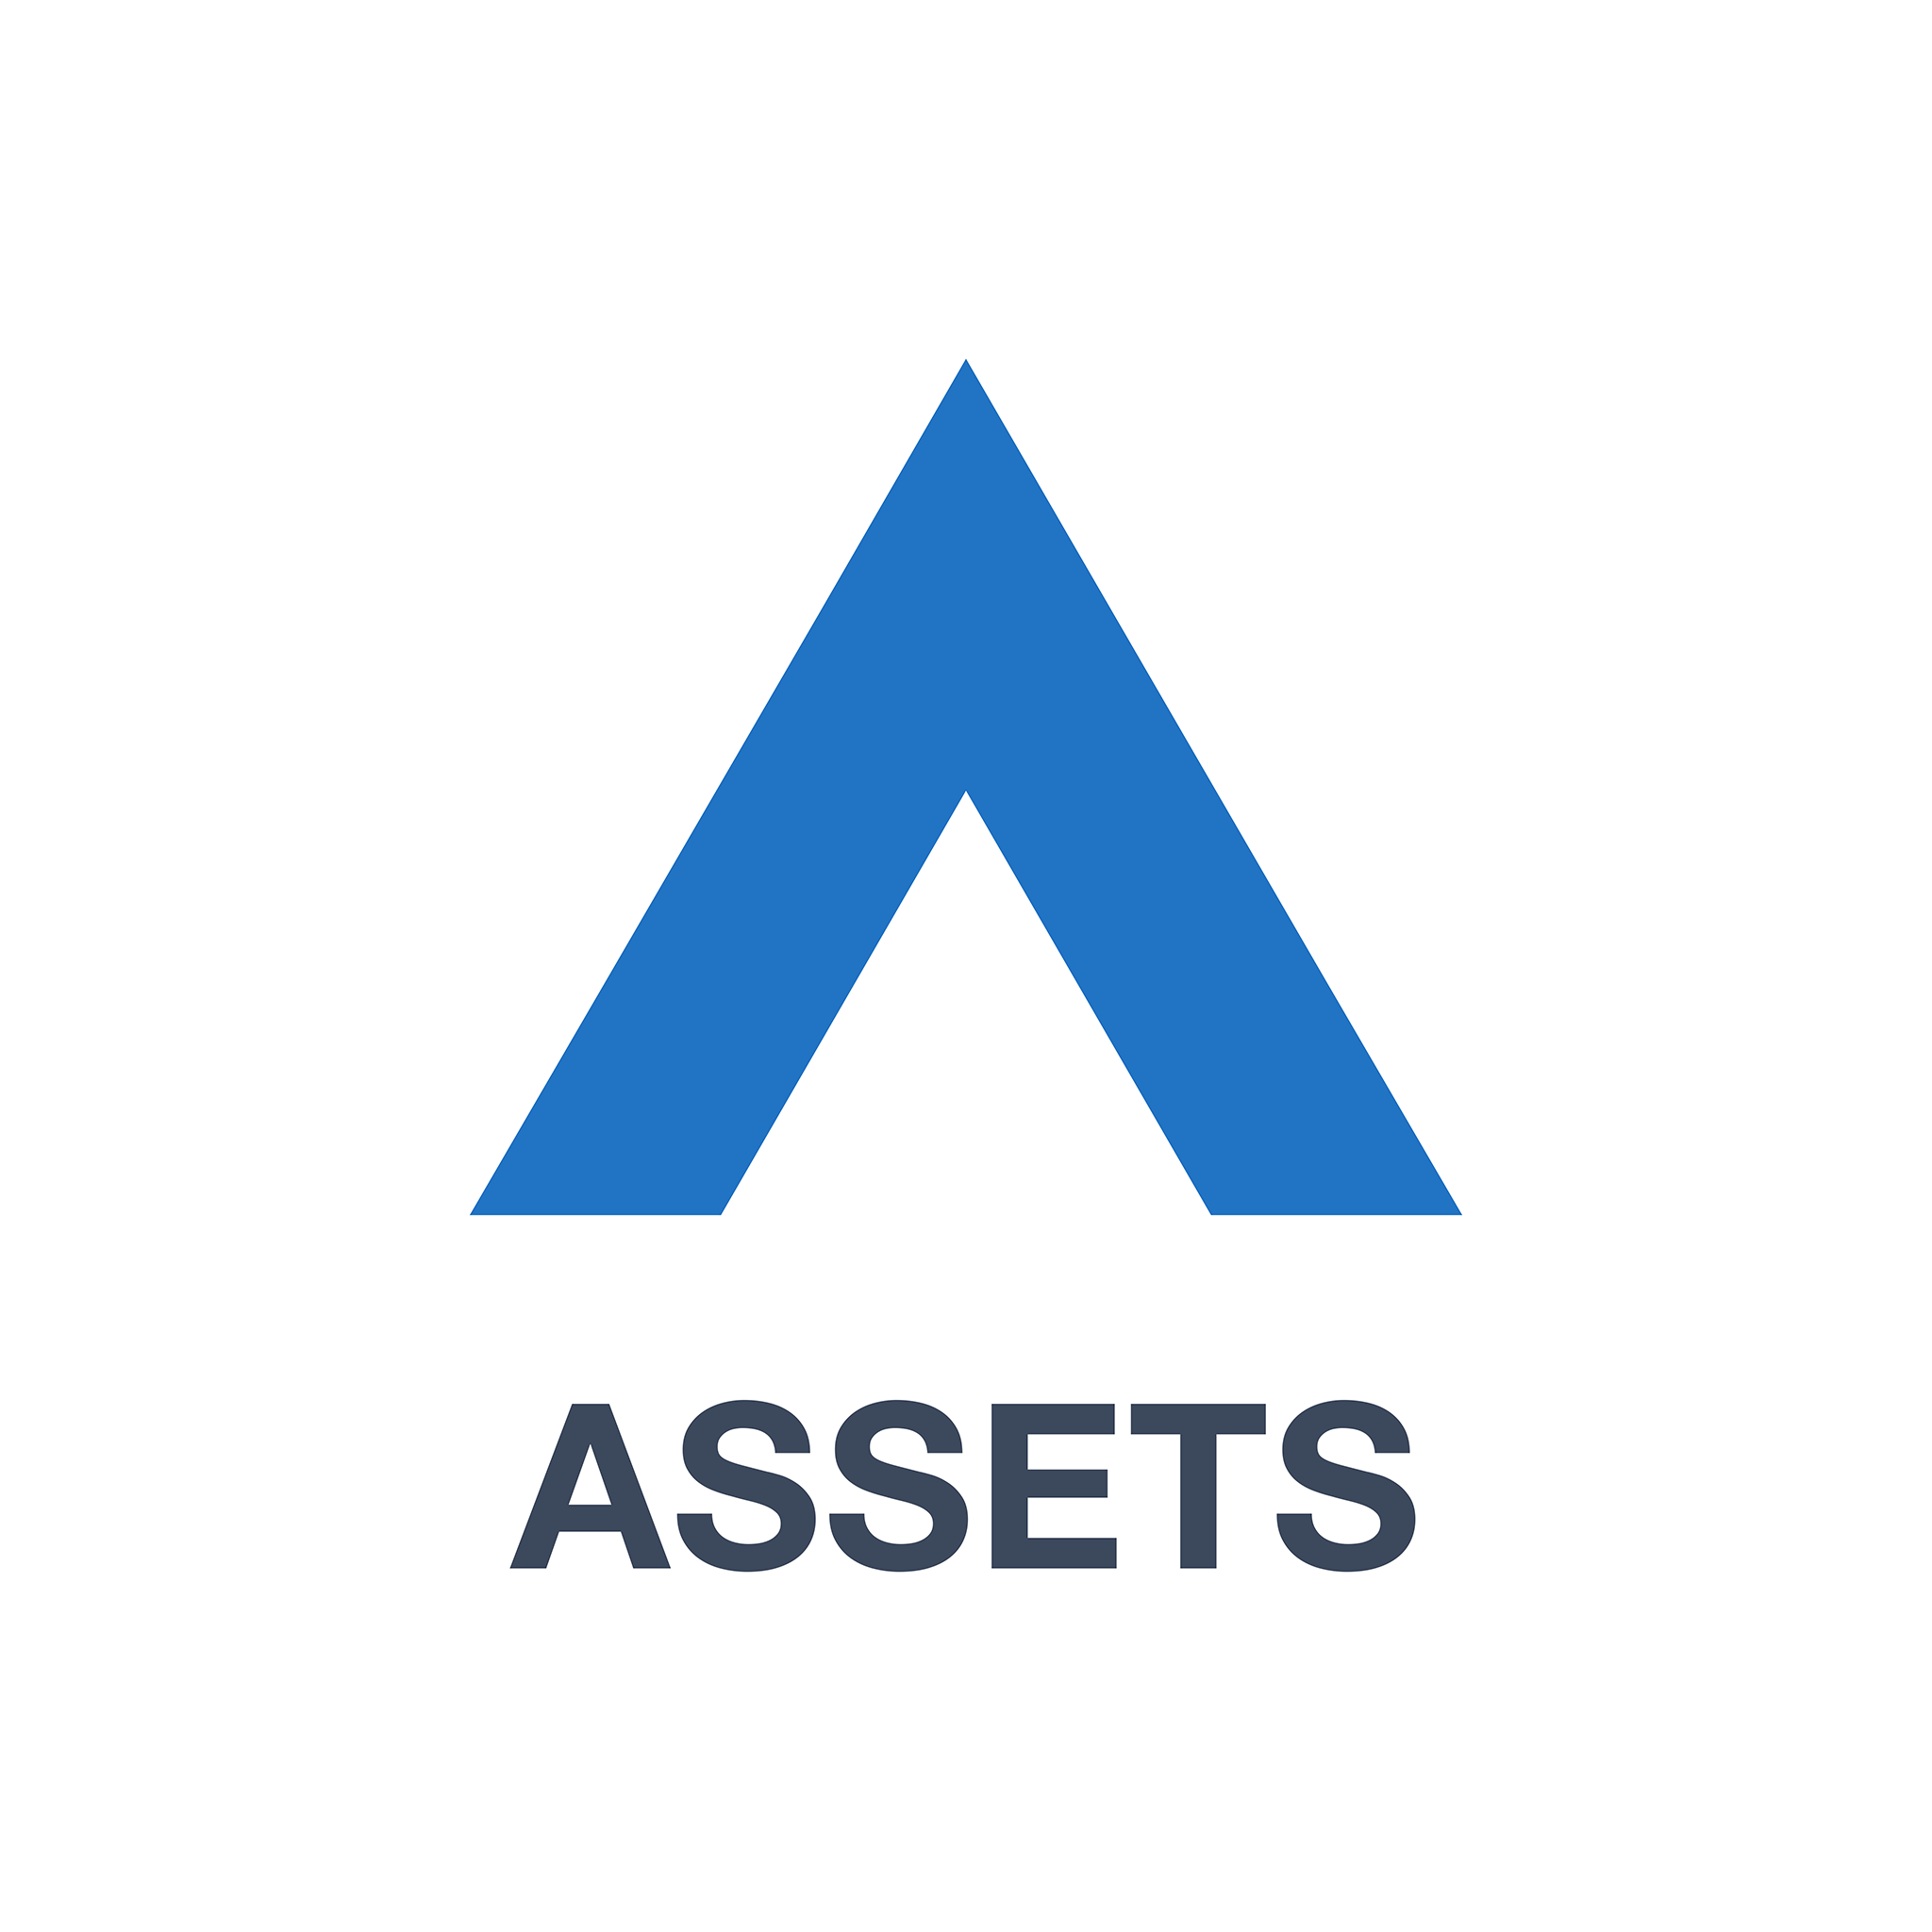 Assets - Digital Asset Management